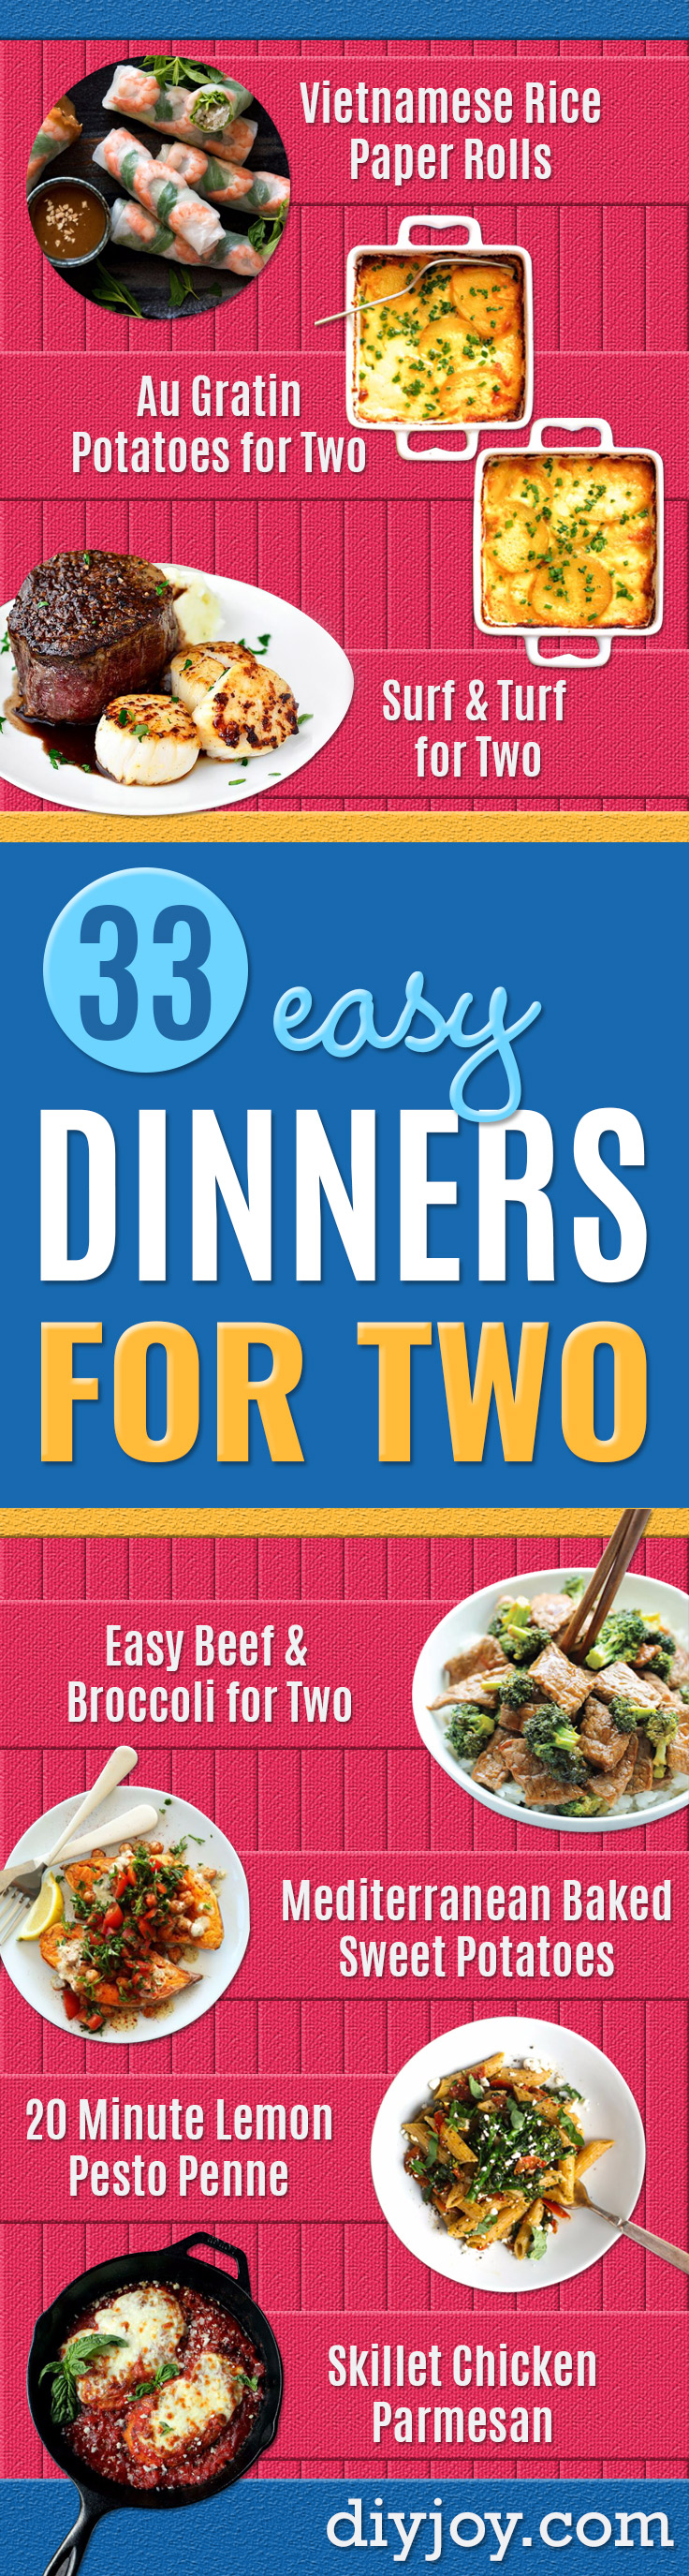 Easy Dinner Ideas for Two - Quick, Fast and Simple Recipes to Make for Two People - Freeze and Make Ahead Dinner Recipe Tips for Best Weeknight Dinners - Chicken, Fish, Vegetable, No Bake and Vegetarian Options - Crockpot, Microwave, Healthy, Lowfat Options http://diyjoy.com/easy-dinners-for-two